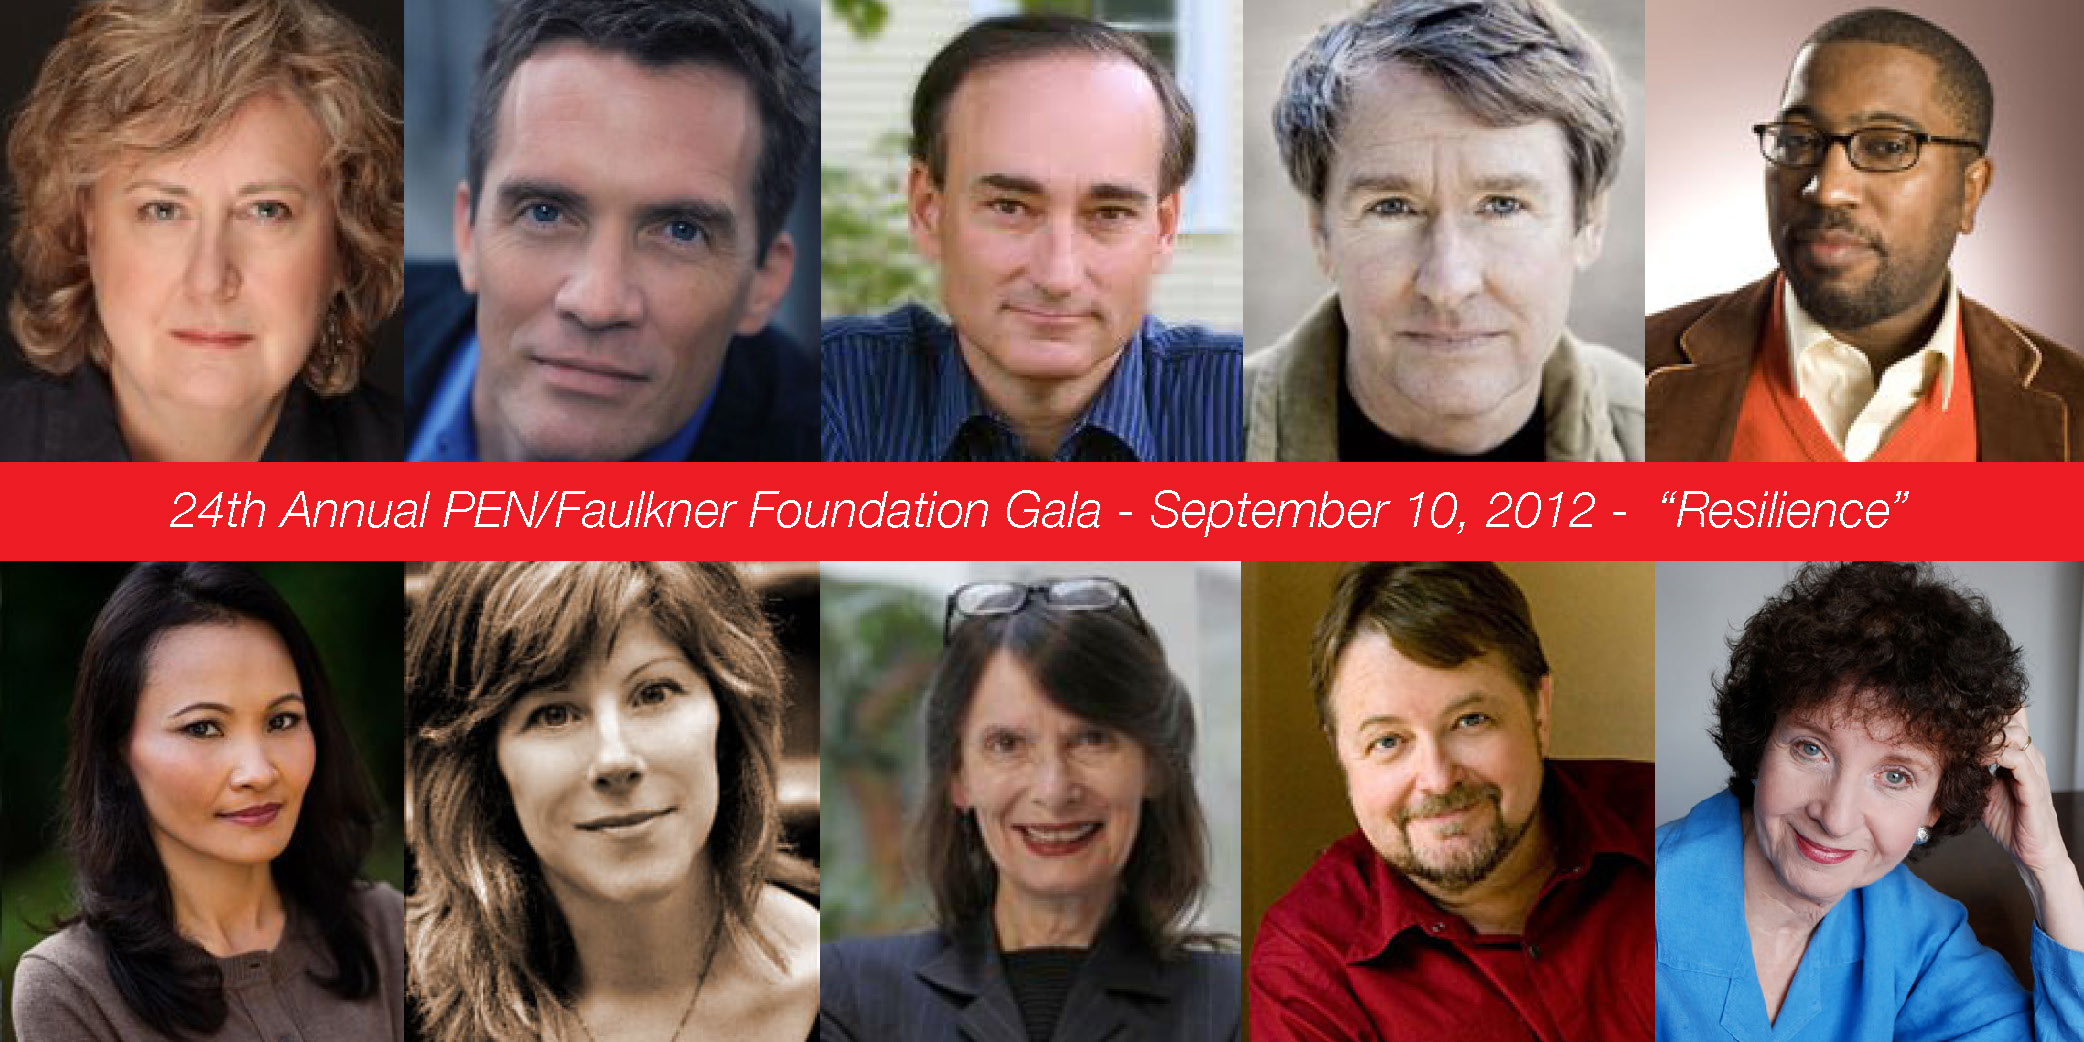 2012 PEN/Faulkner Gala Author Photos